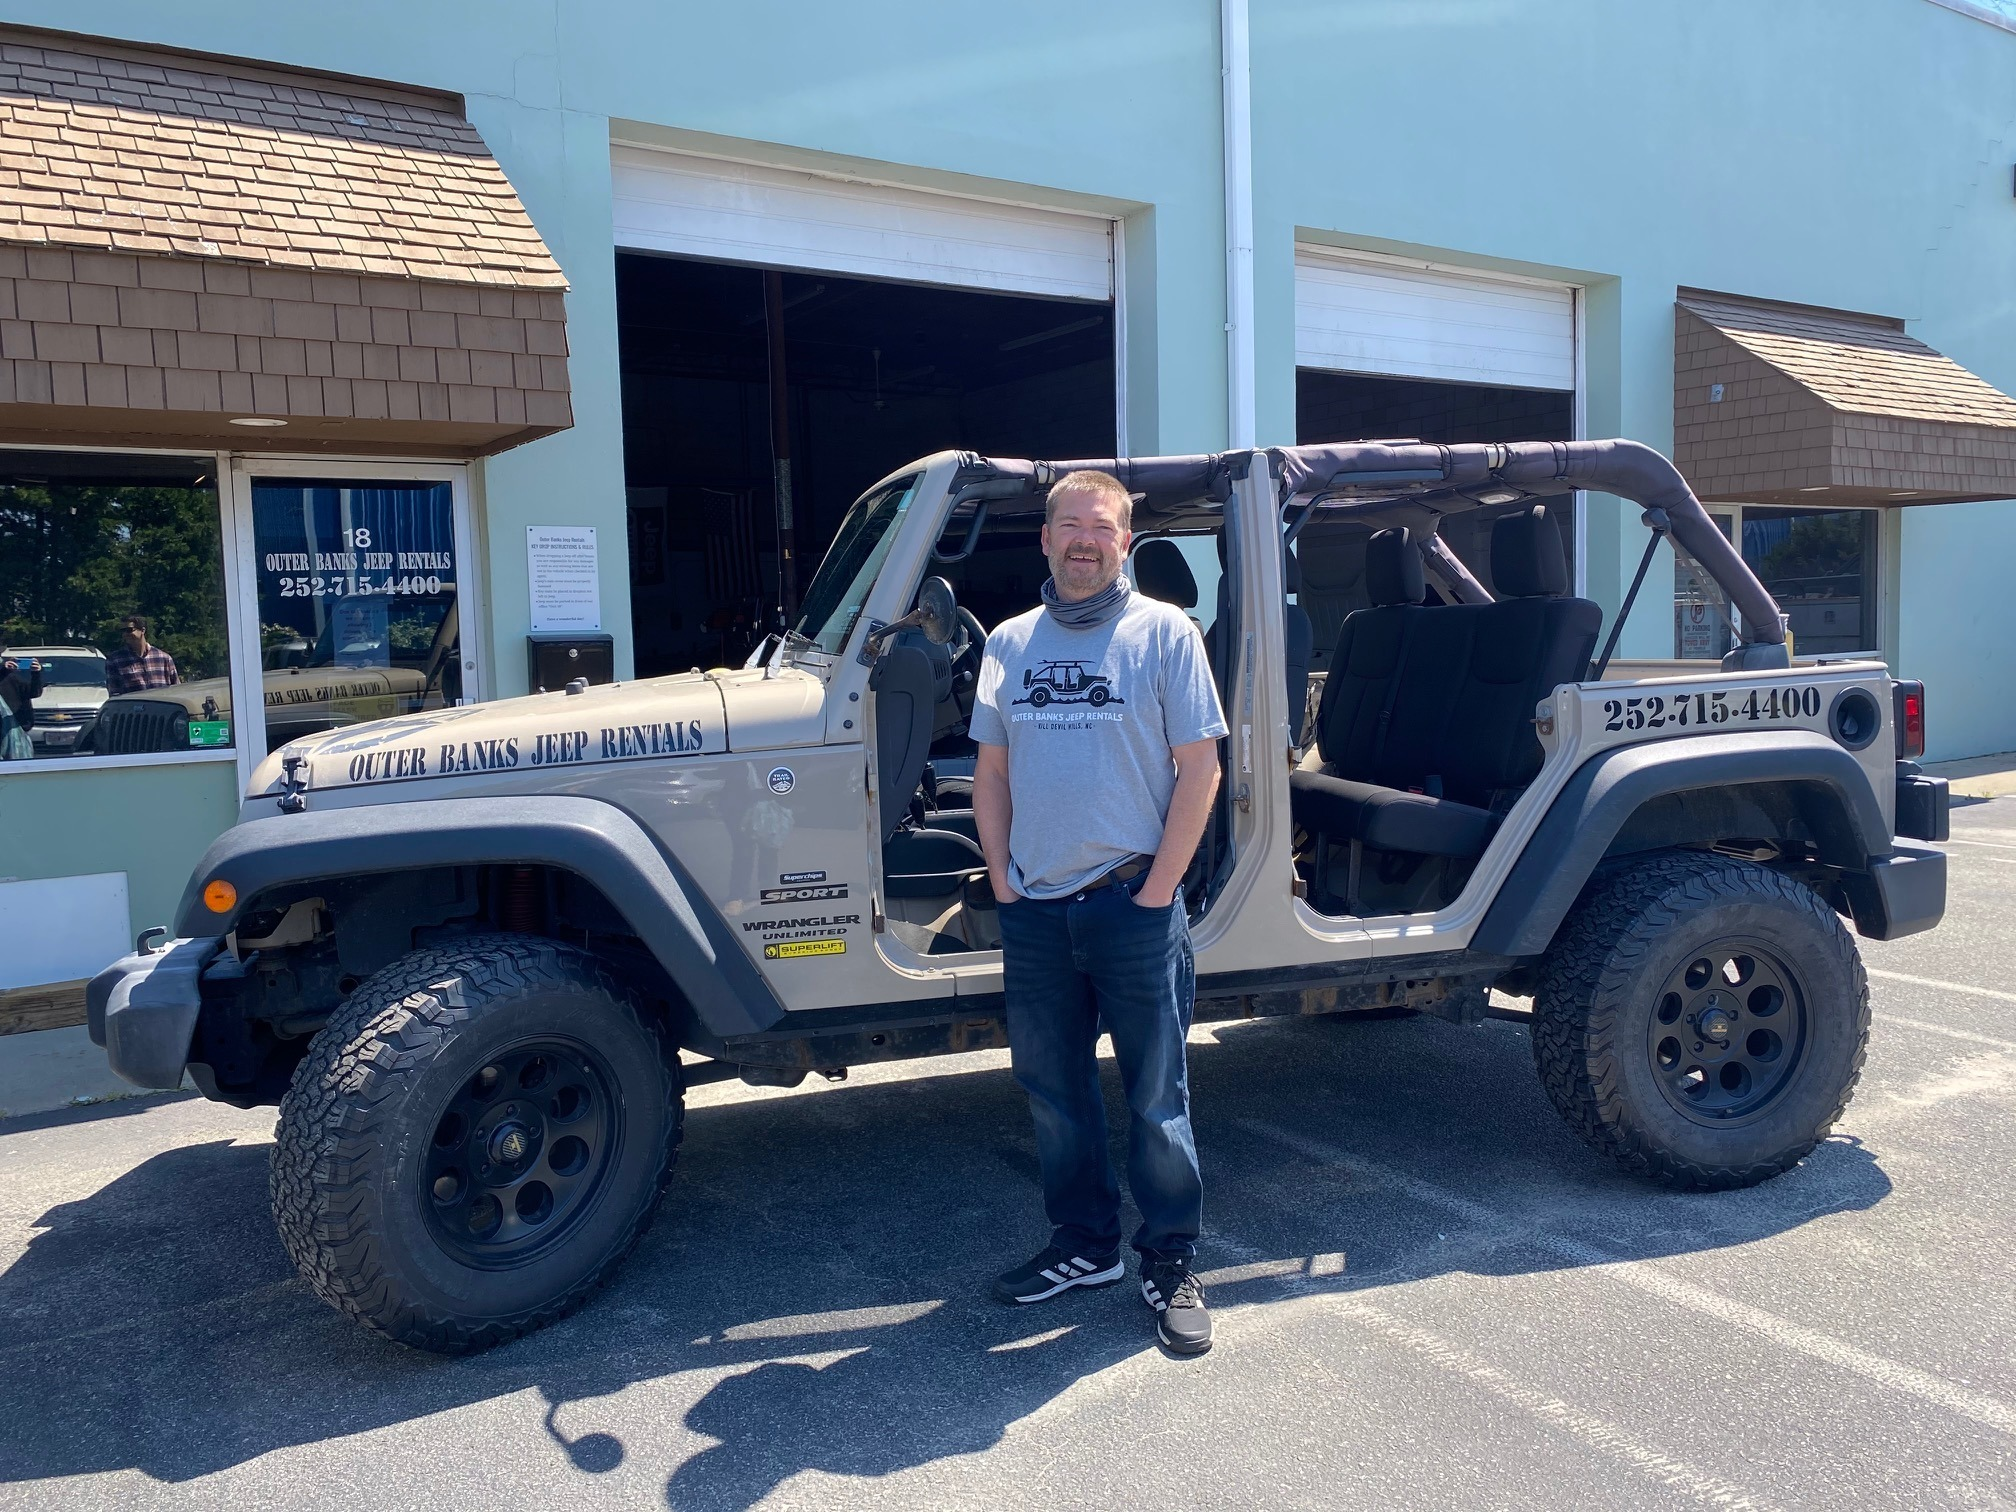 Next Outer Banks Jeep Rentals has a new owner - OBXToday.com